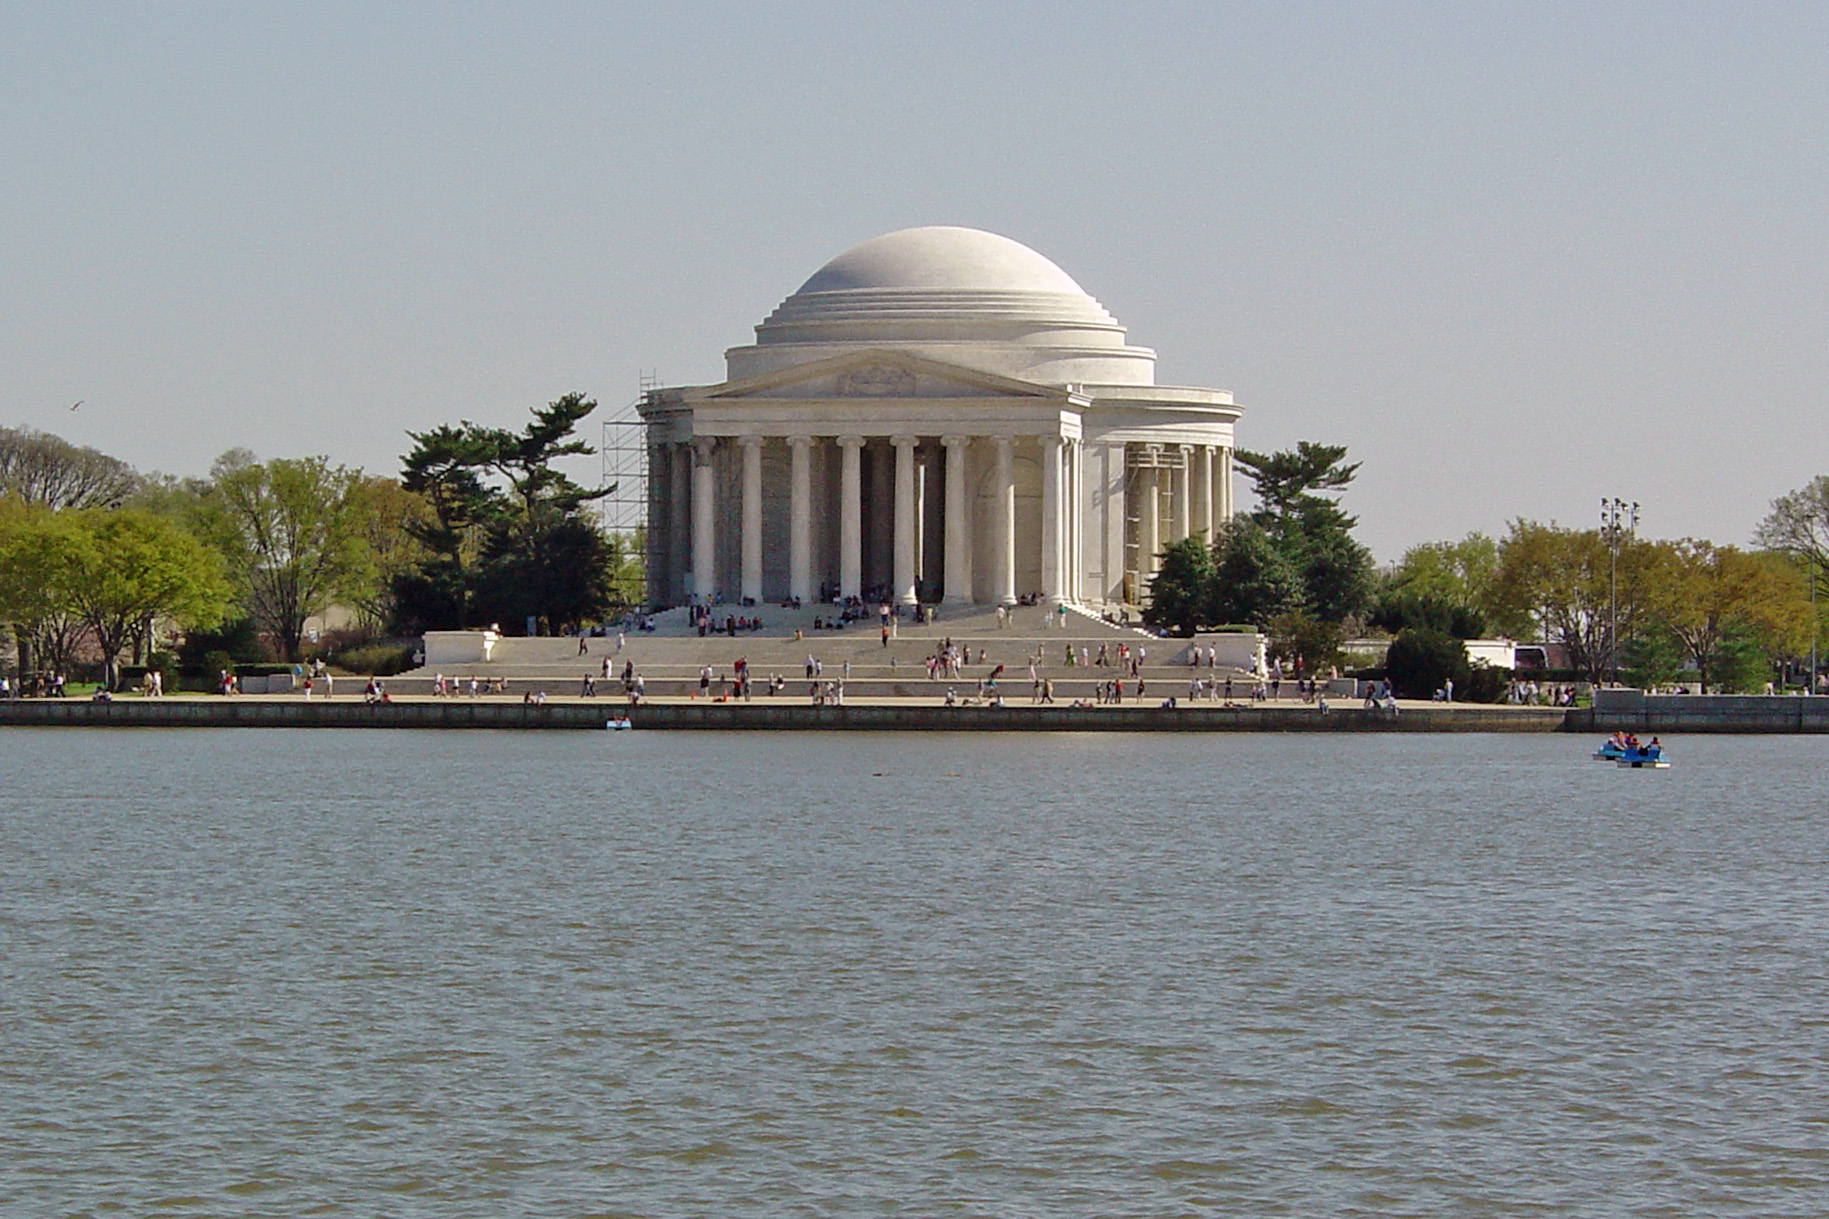 The Thomas Jefferson Memorial in Washington, D. C.